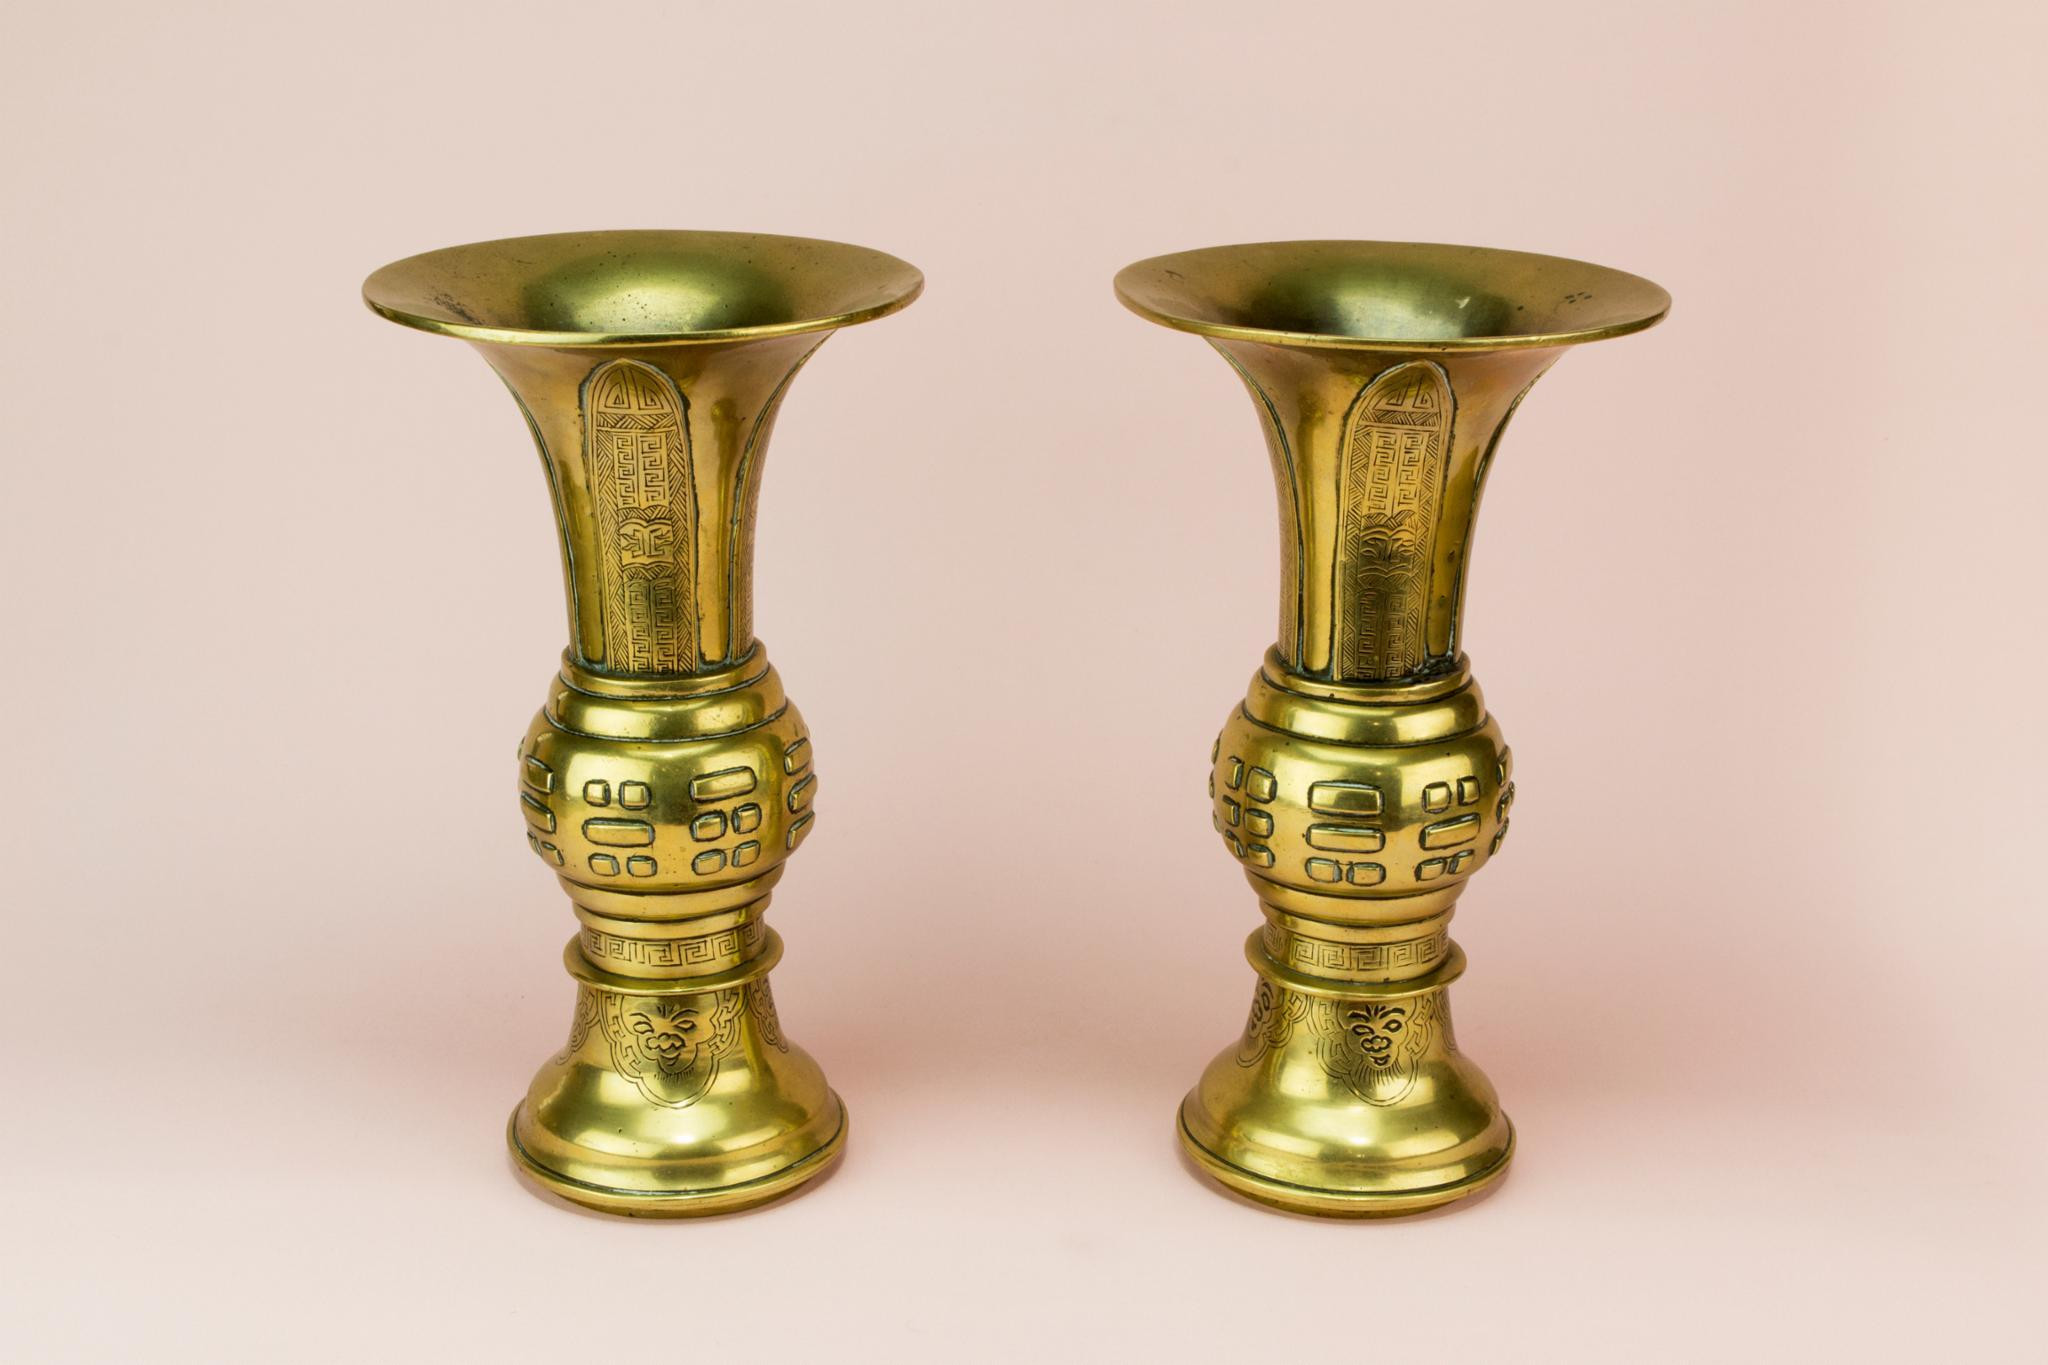 antique crystal vases and bowls of 2 gu shaped brass vases chinese 19th century late 19th century within 2 gu shaped brass vases chinese 19th century